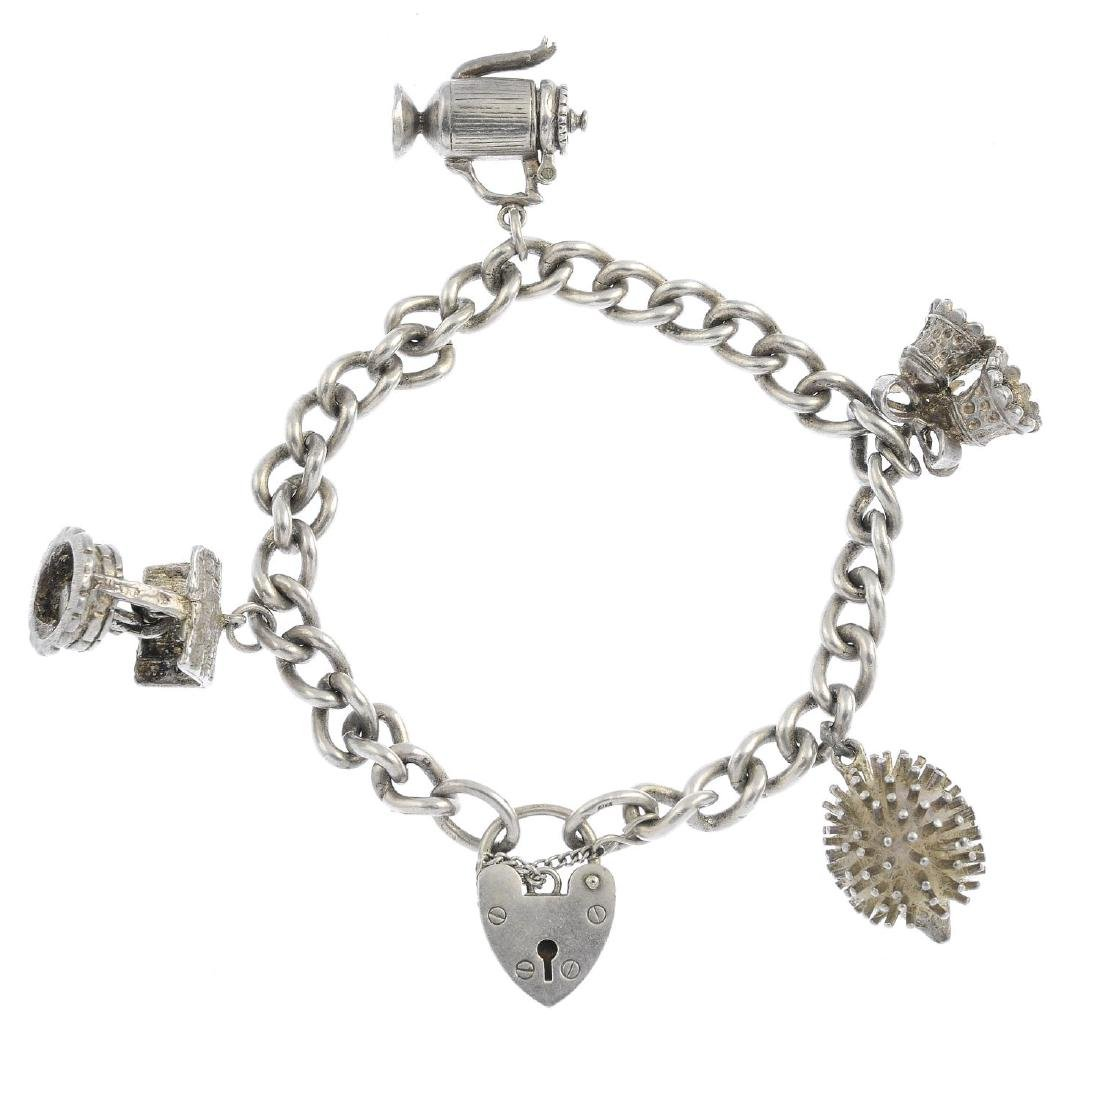 Three silver charm bracelets and charms. Each designed